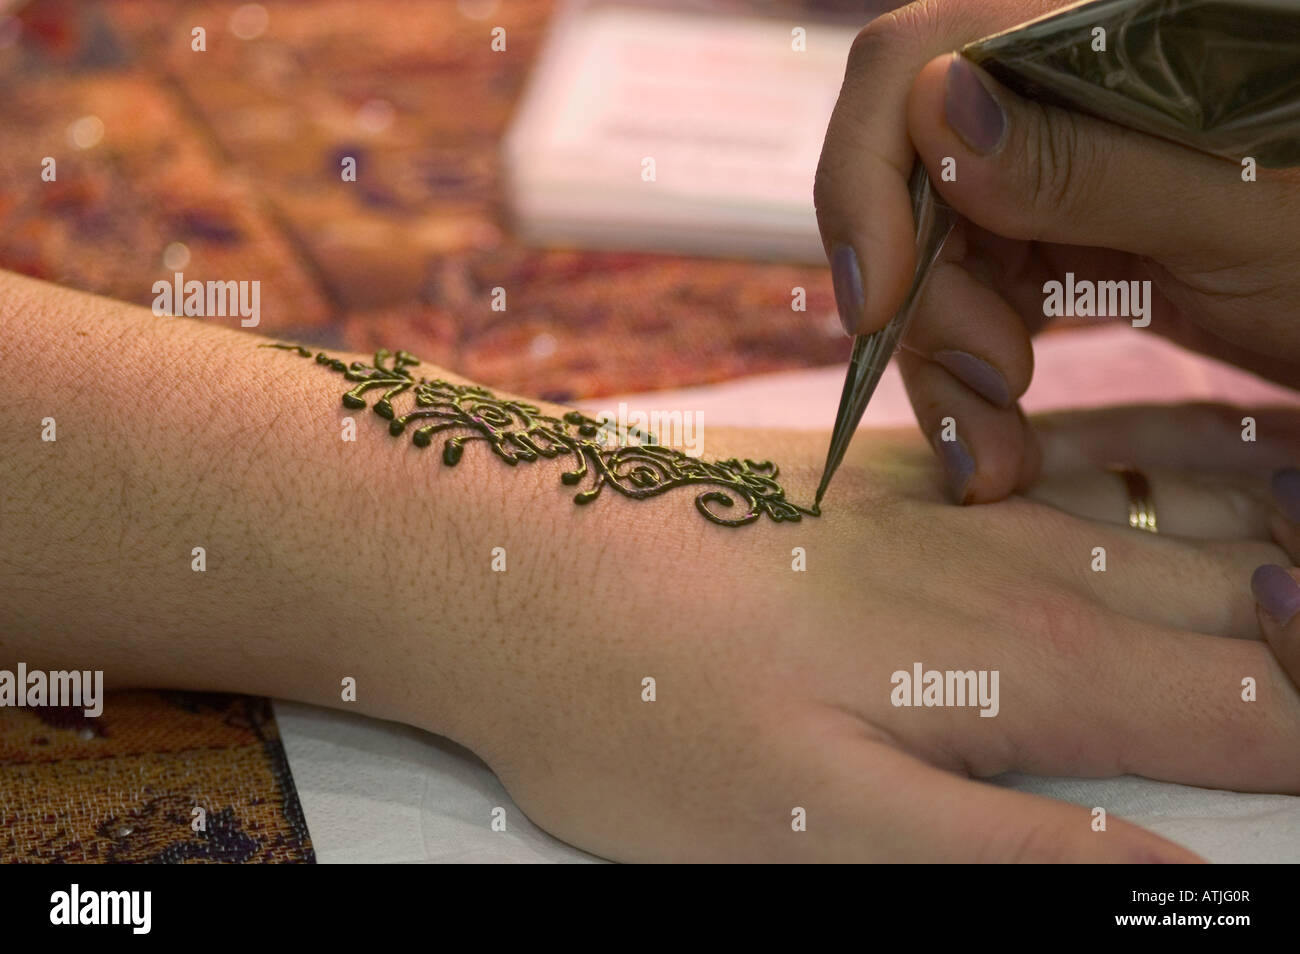 Henna Tattoo Body Art Detail Hand Woman Culture Tradition Typical Stock Photo Alamy